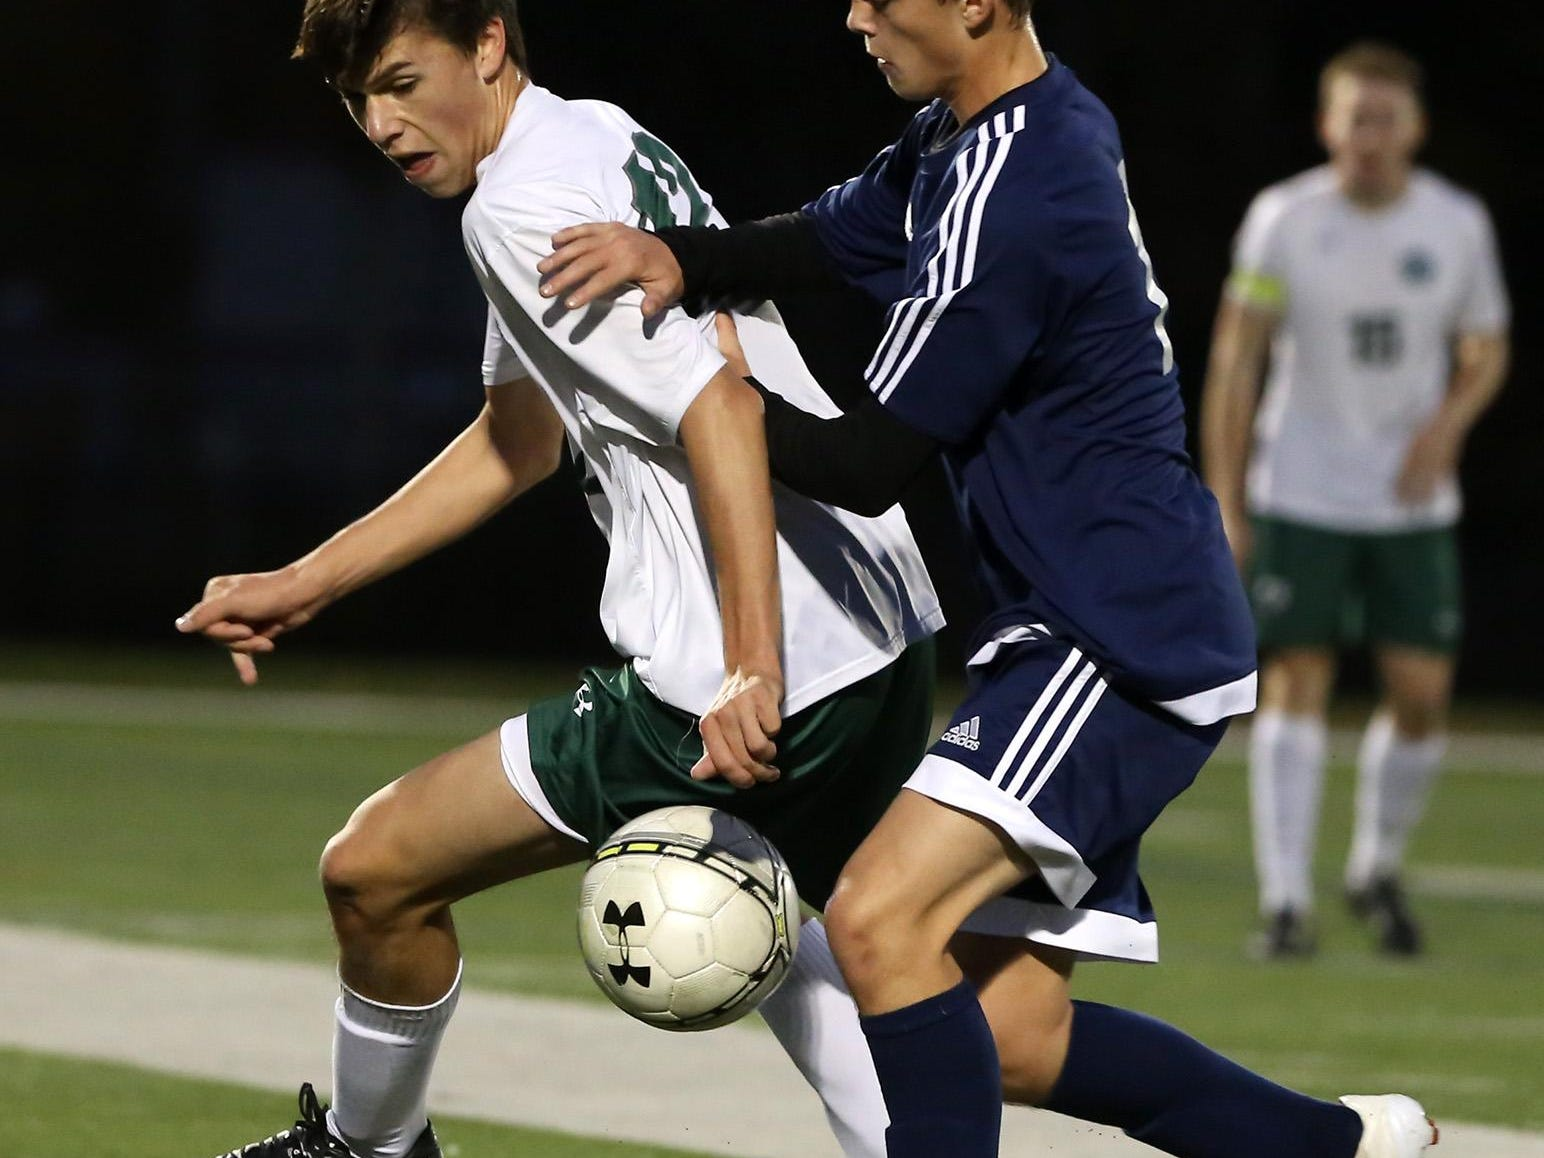 Morris County Tournament boys soccer final, Randolph vs. Delbarton, played at Roxbury High School, Roxbury, NJ. Friday, Oct. 24, 2015. Special to NJ Press Media/Karen Mancinelli/Daily Record MOr 1025 BS MCT final